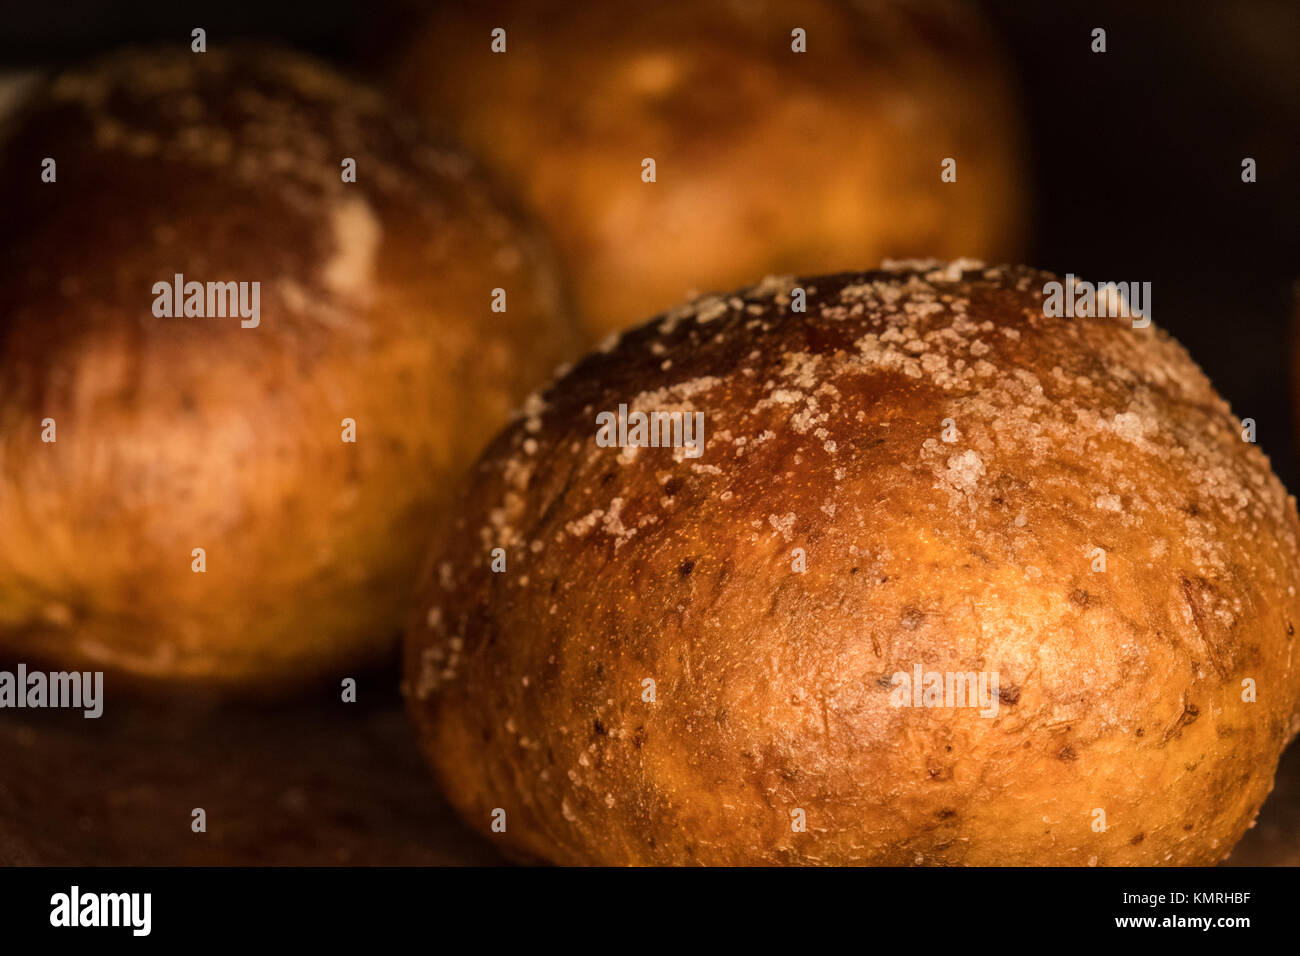 baked potatoes with crispy skins covered in olive oil and salt baking in oven - Stock Image